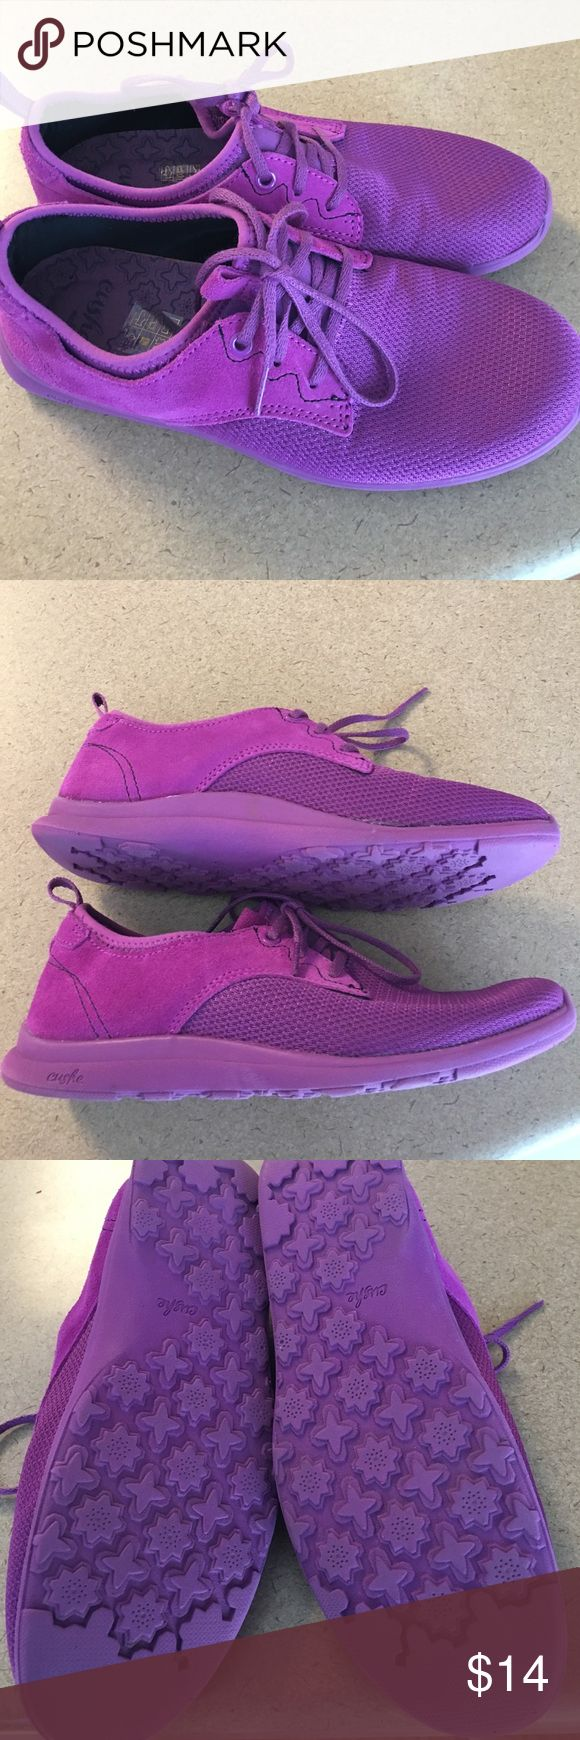 Women's Cushe sneakers Women's Cushe mellow walking shoe. Very lightweight with nice insoles. Size 8 in good to great condition. Cushe Shoes Athletic Shoes